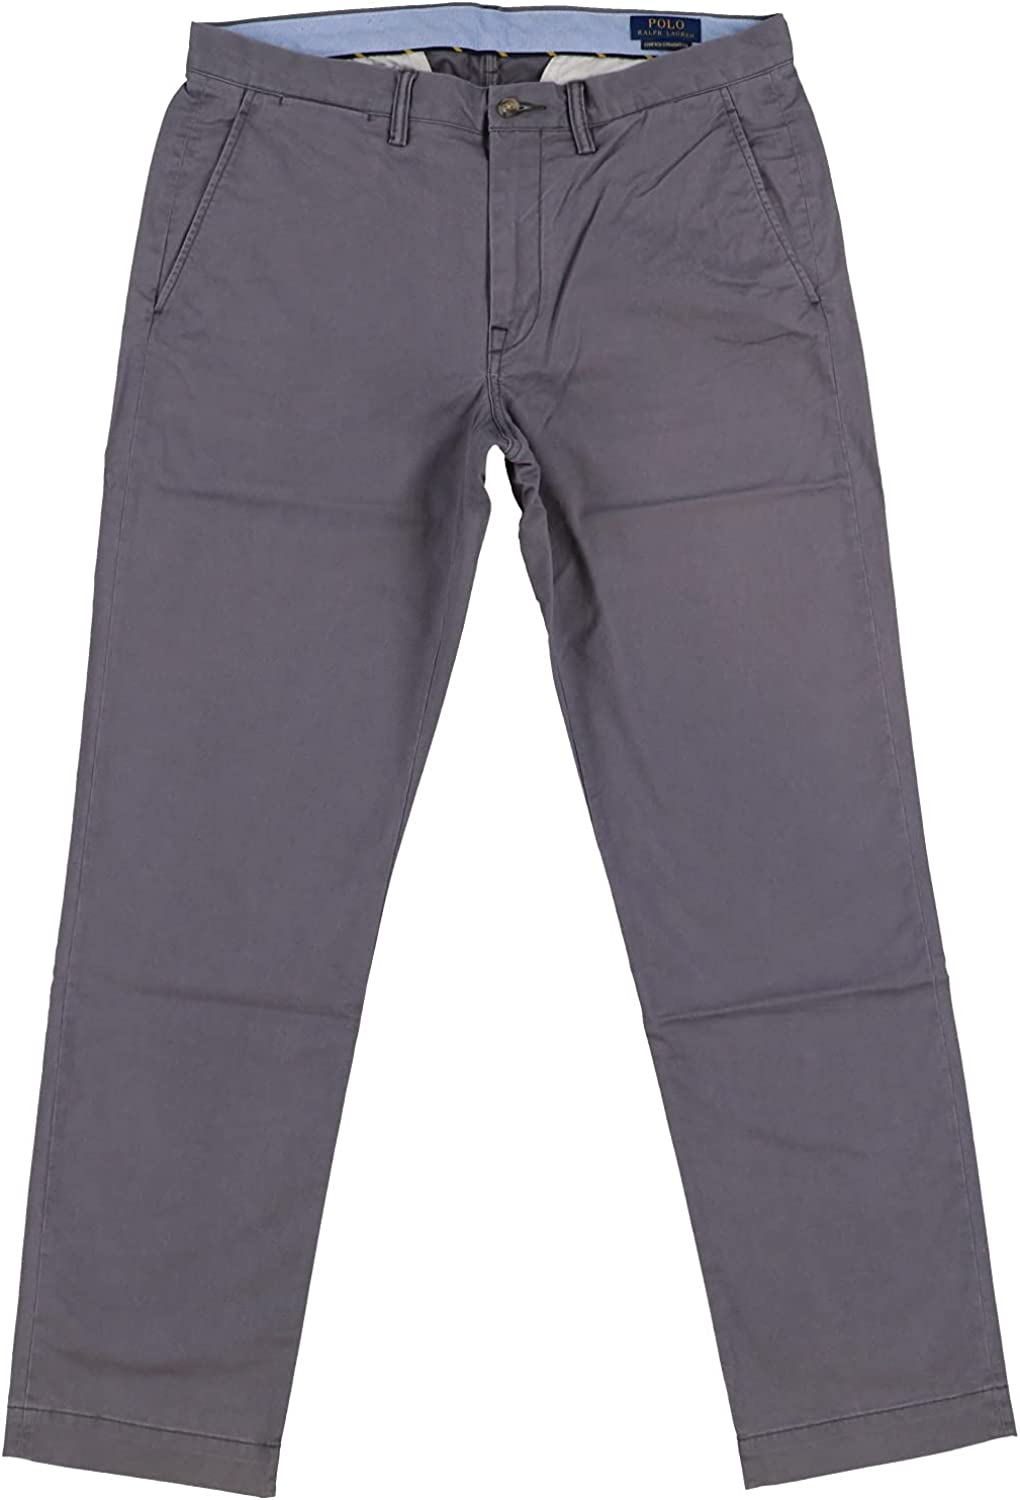 Polo Ralph Lauren Men's Stretch Straight Fit Casual Pants